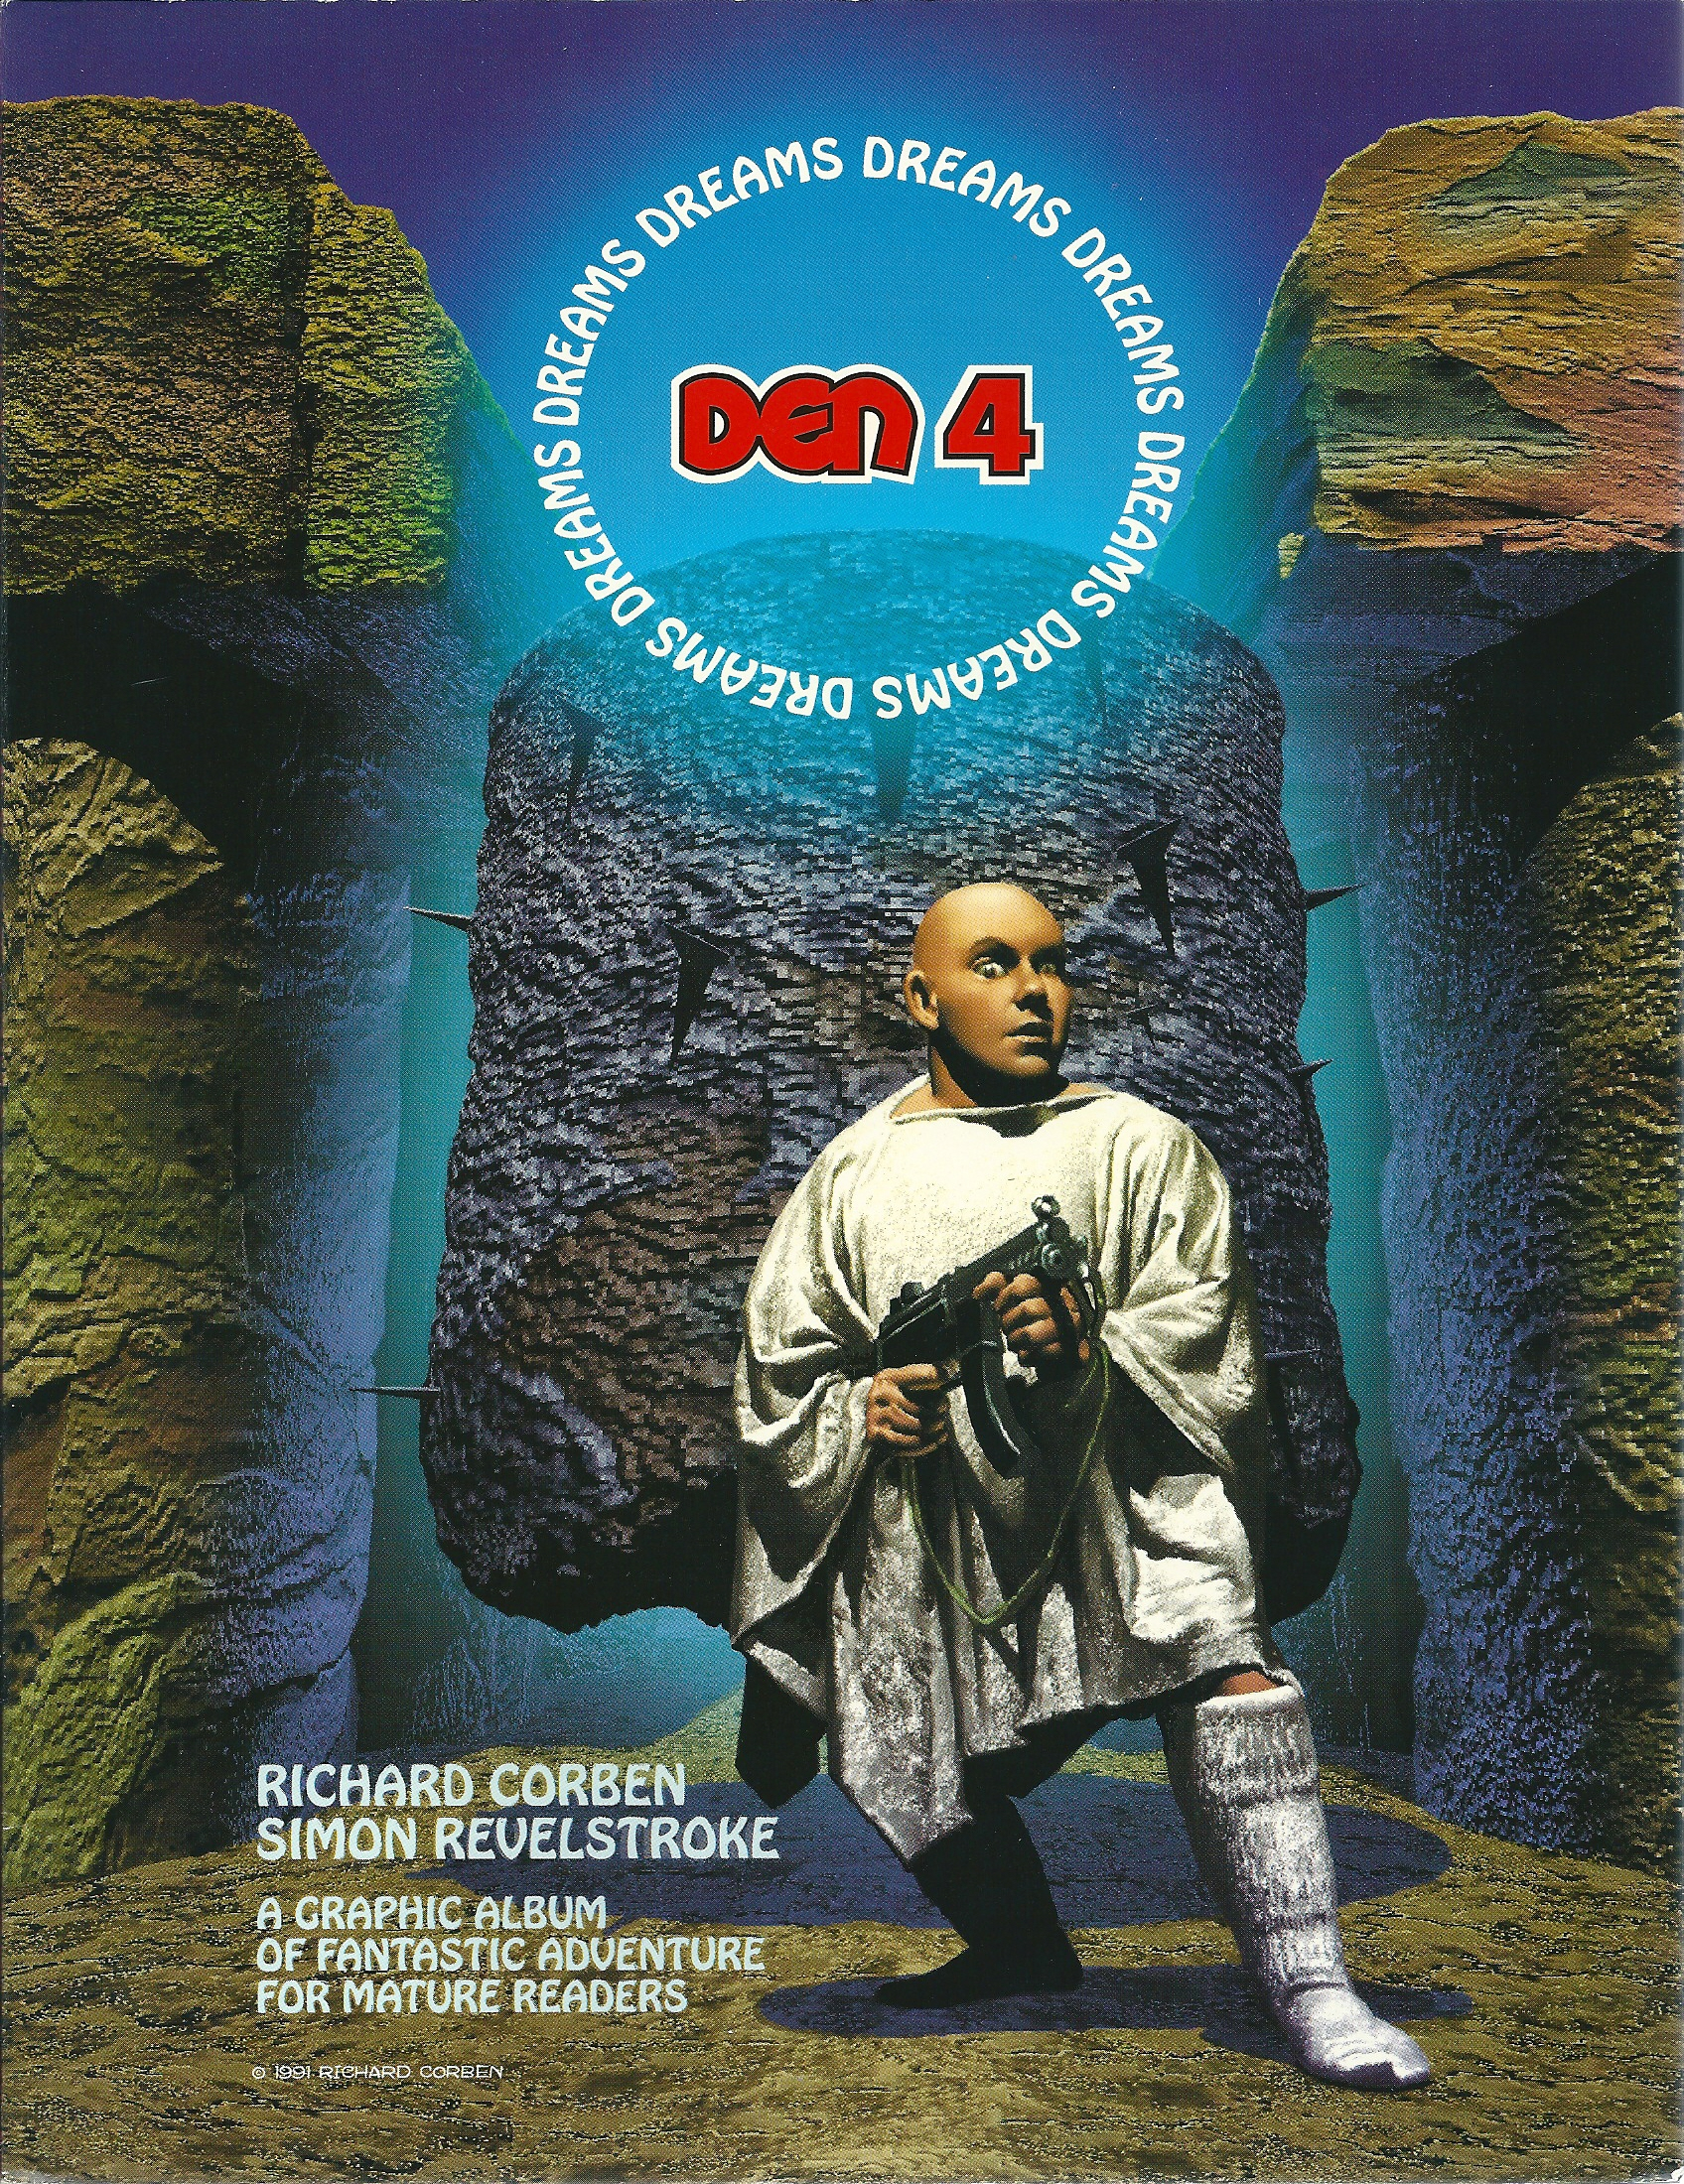 Den 4 Dreams van Richard Corben-0